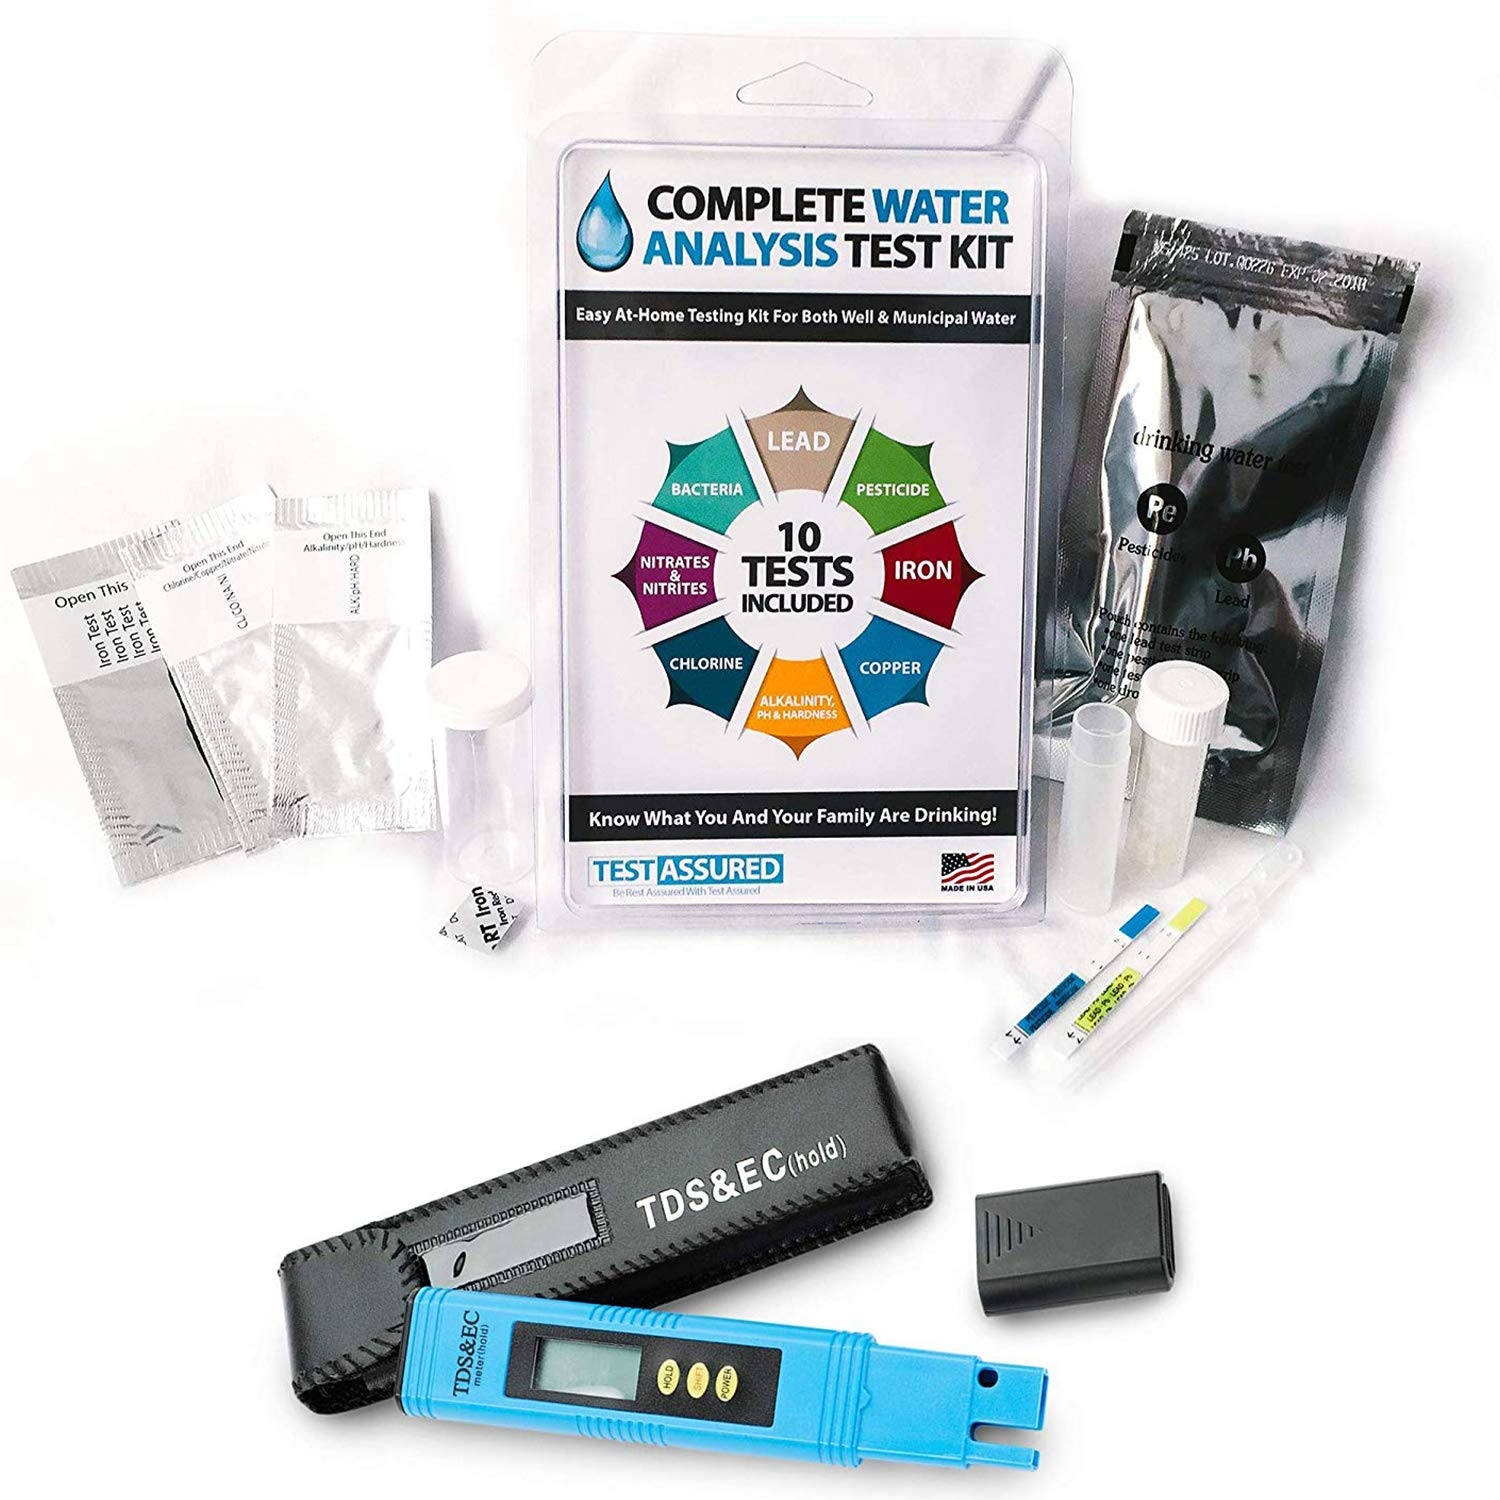 Test Assured Drinking Water Test Kit with Digital TDS Meter - Easy at-Home EPA Water Test Kit for 10 Water Contaminants and Total Dissolved Solids by Test Assured